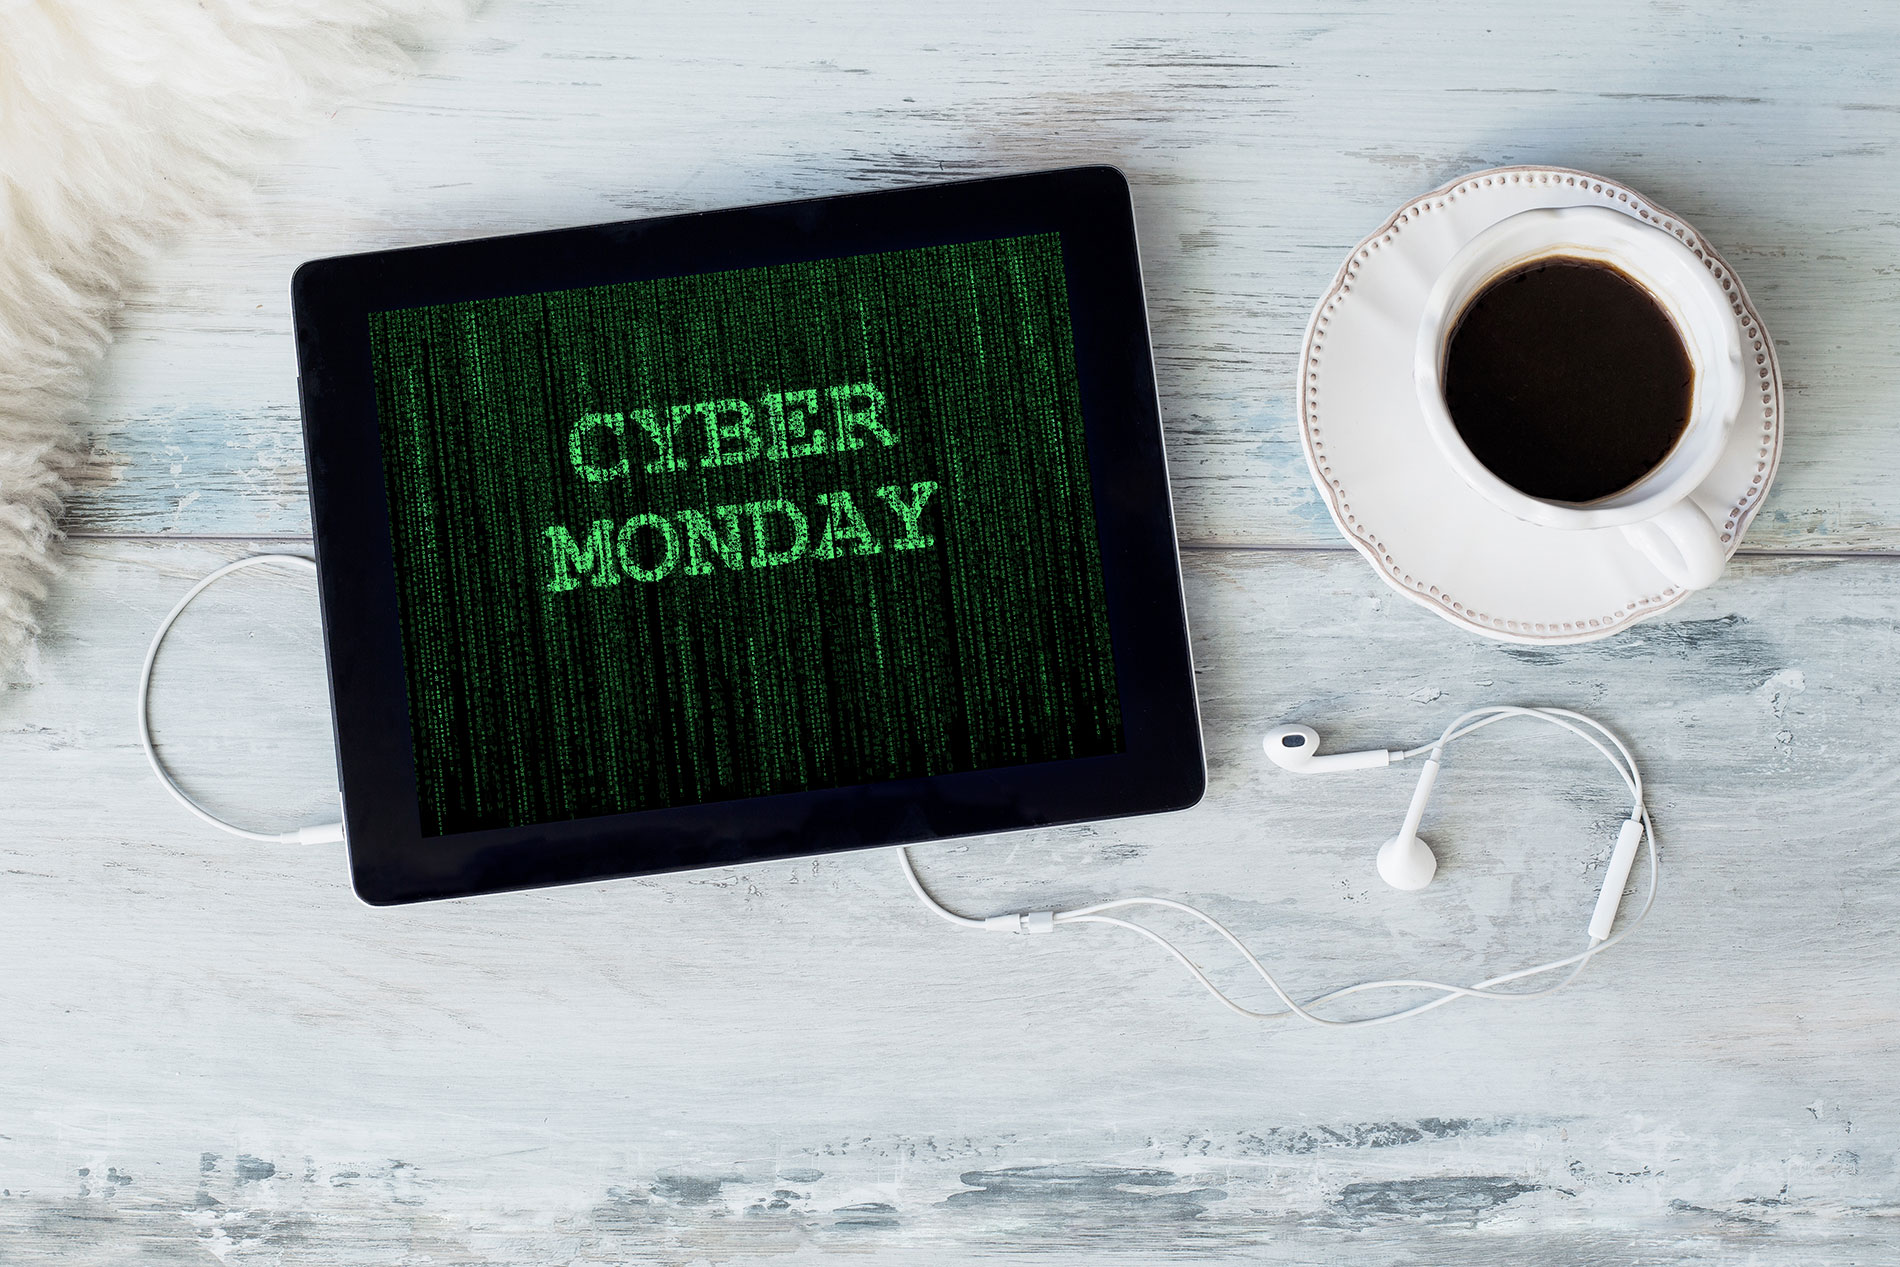 cyber-monday-looks-to-break-records-again